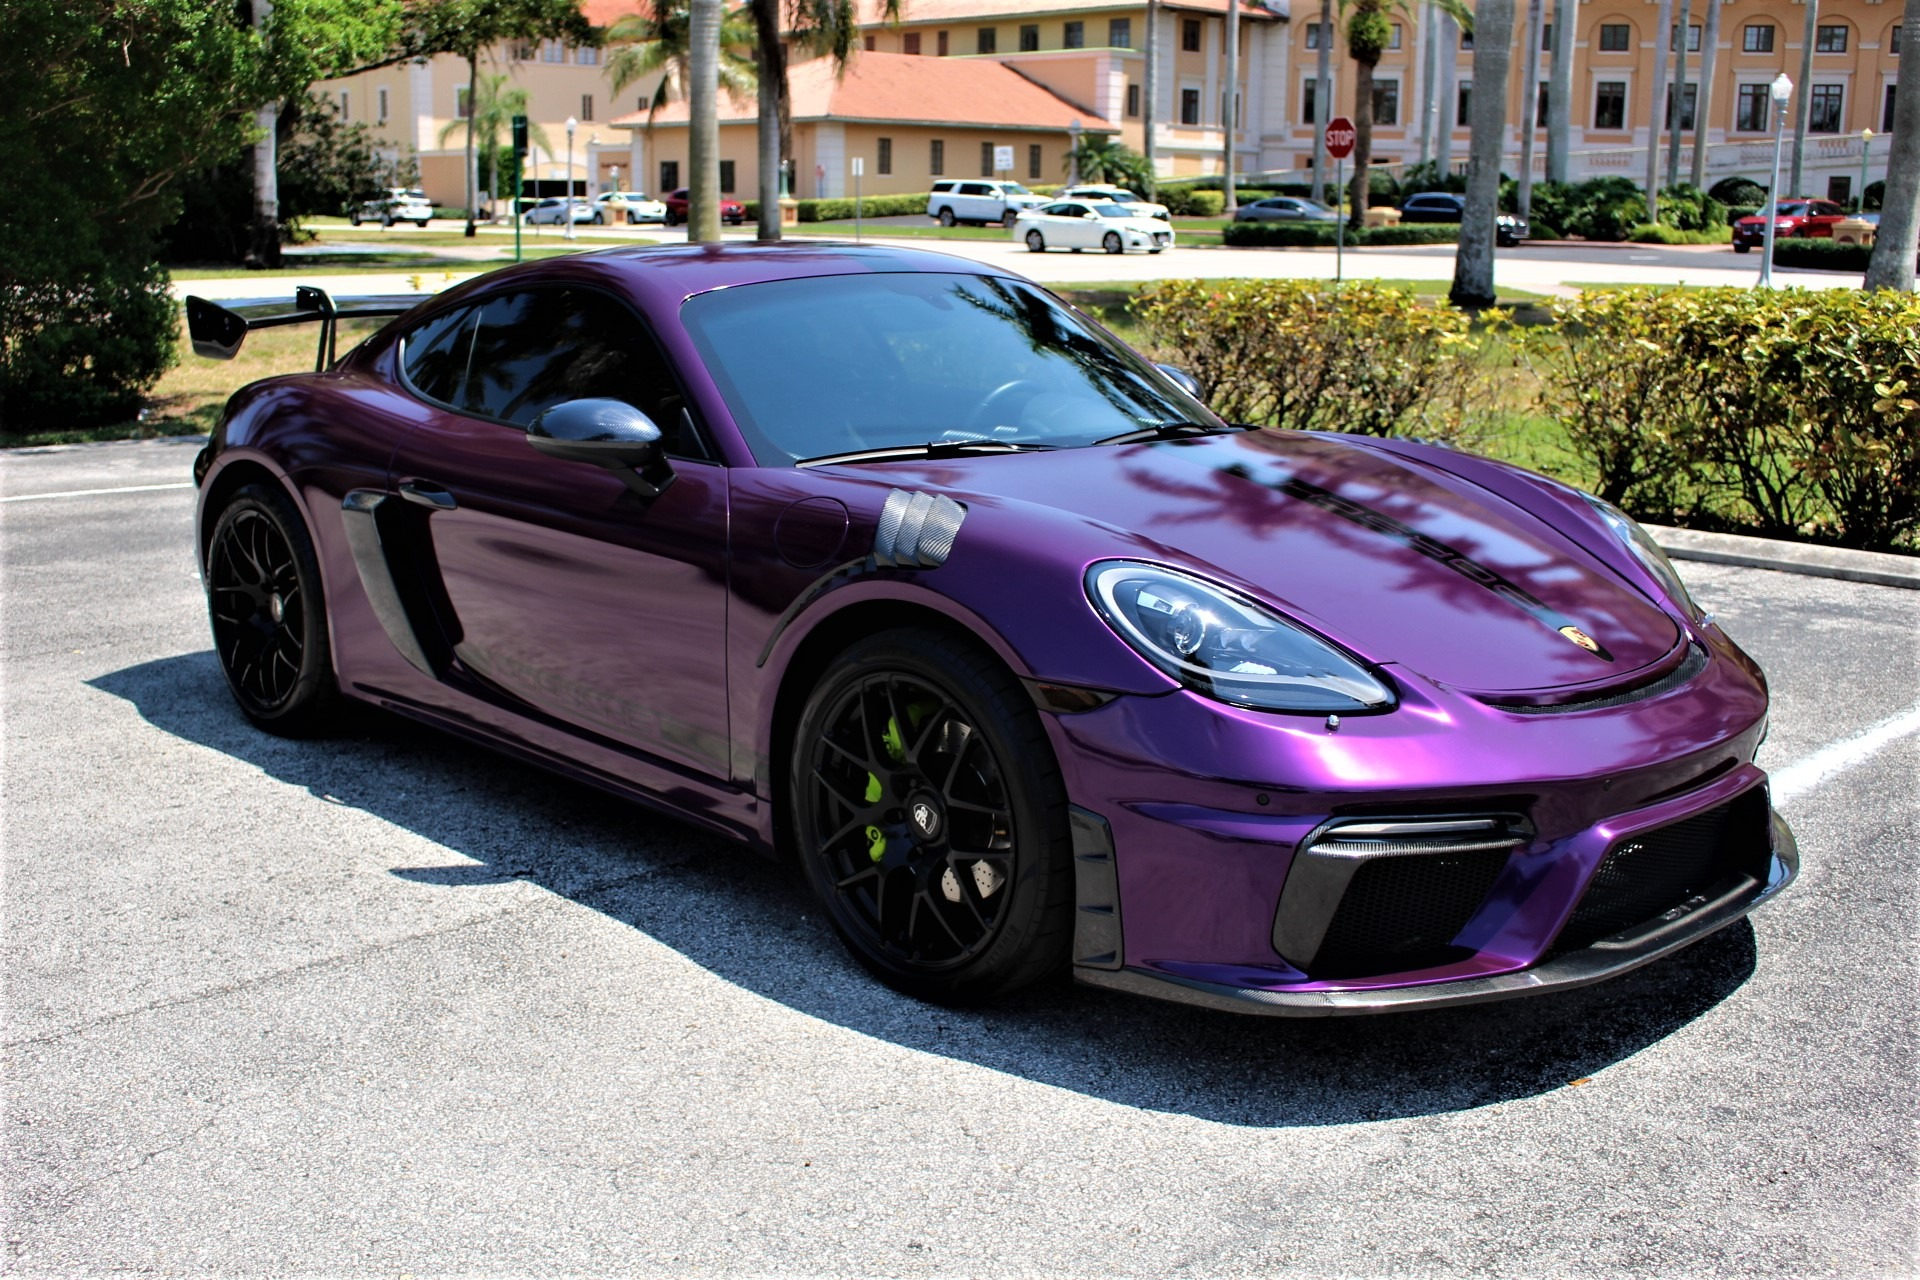 Used 2017 Porsche 718 Cayman S for sale Sold at The Gables Sports Cars in Miami FL 33146 2